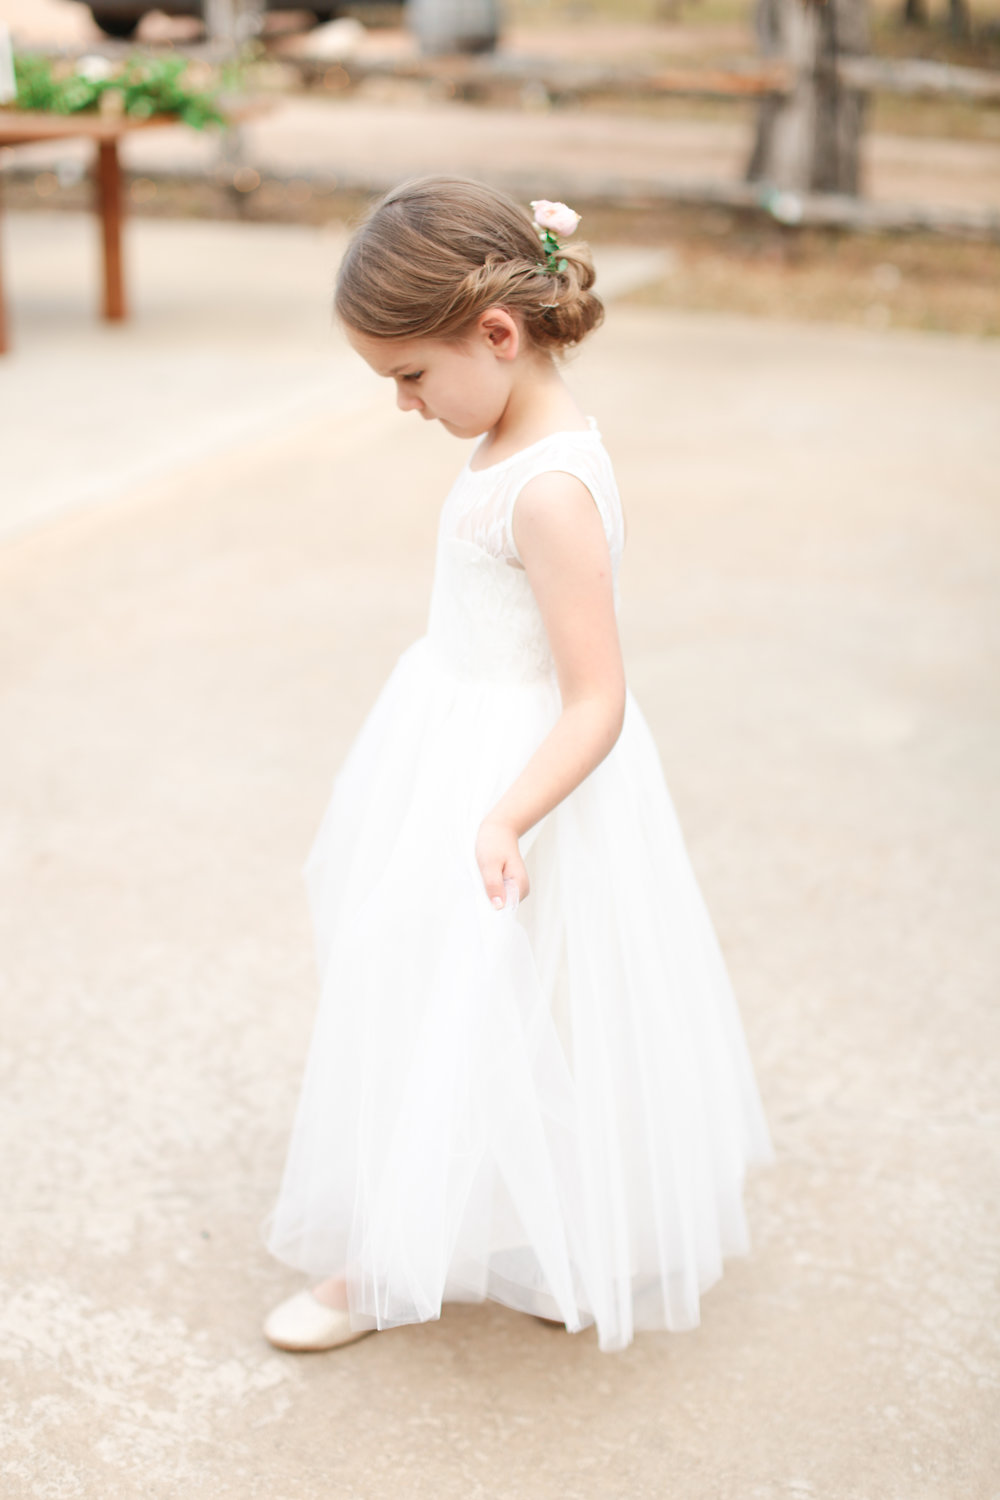 Lewis Wedding Collection - Shara Jo Photography-106.jpg